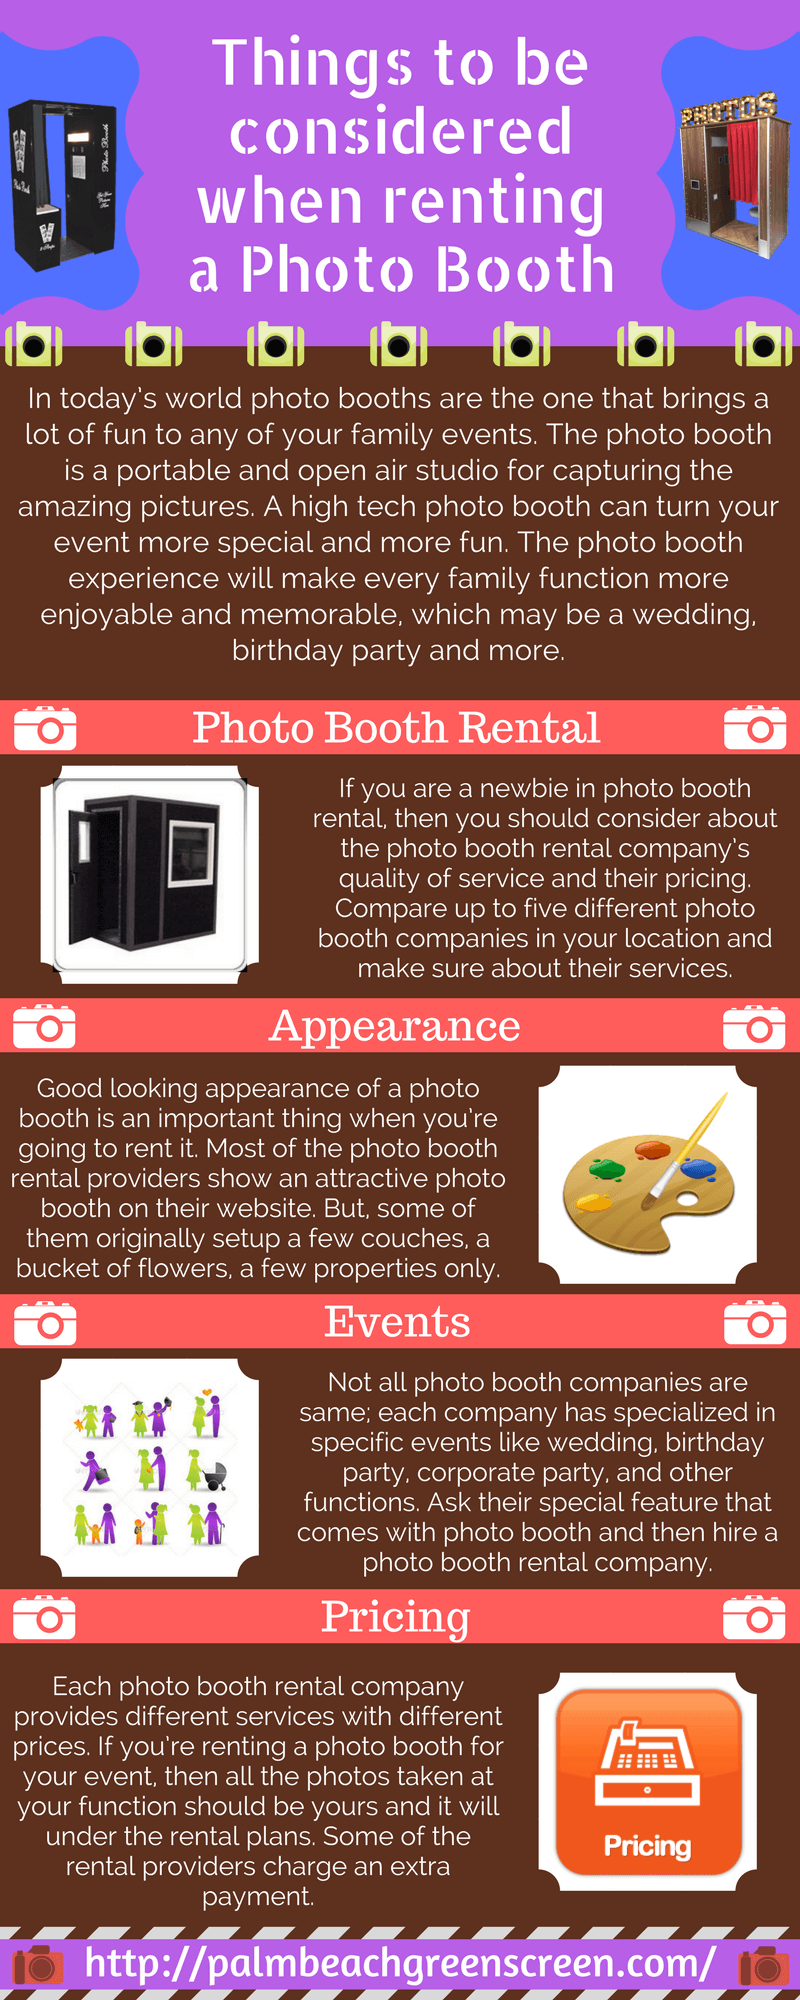 Things to be Considered When Renting a Photo Booth